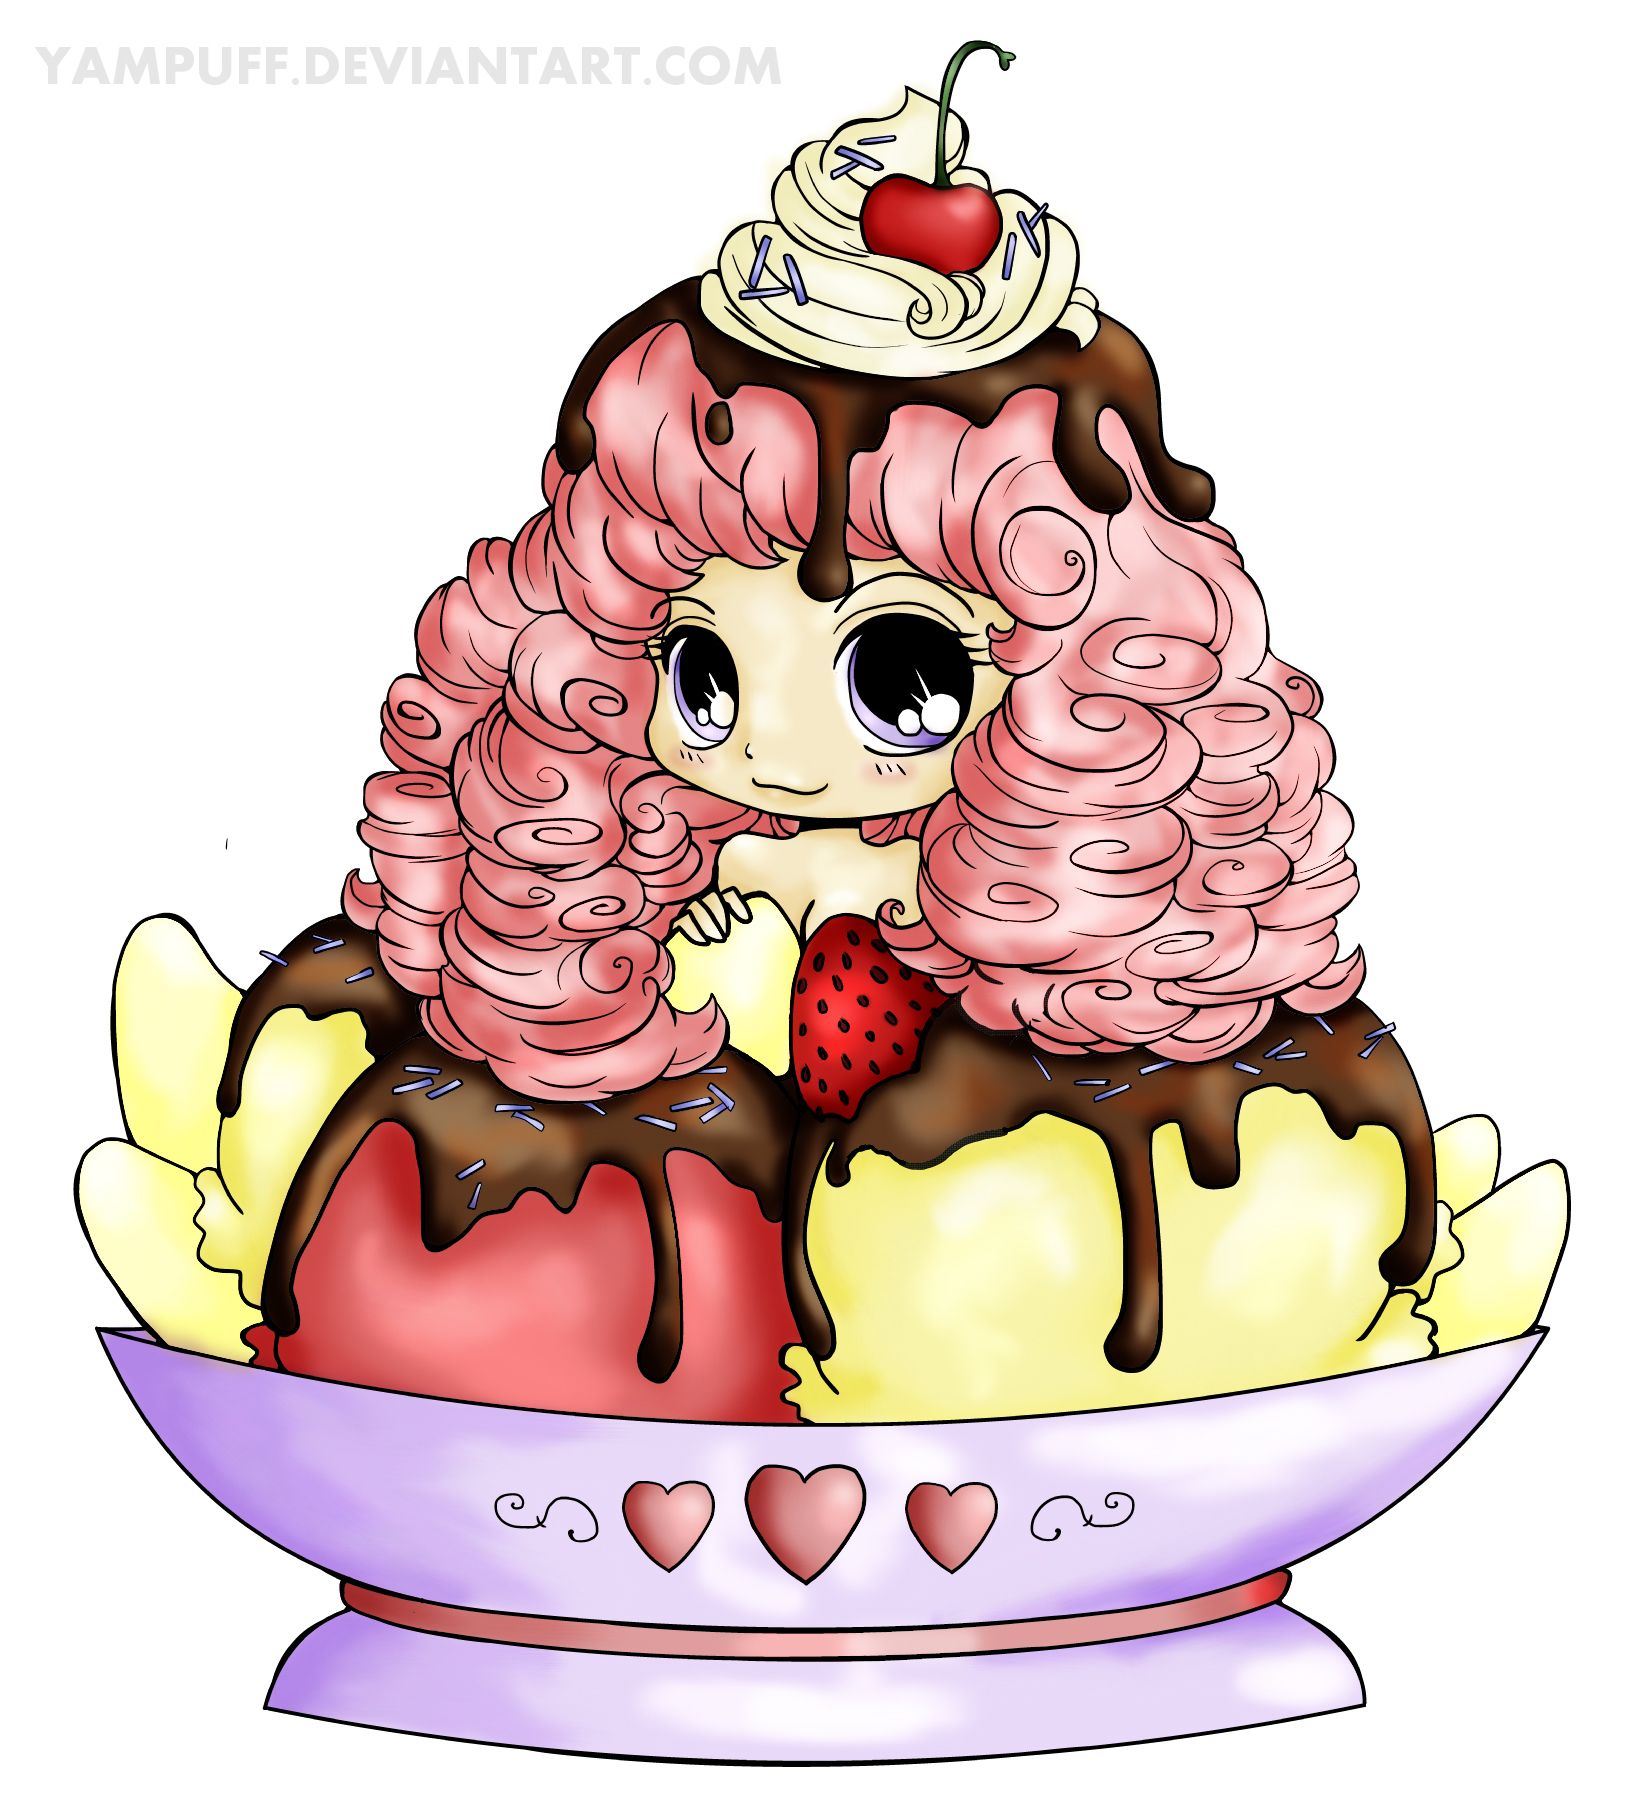 Pin by ki immell on photoshop coloring in 2019 chibi - Ice cream anime girl ...